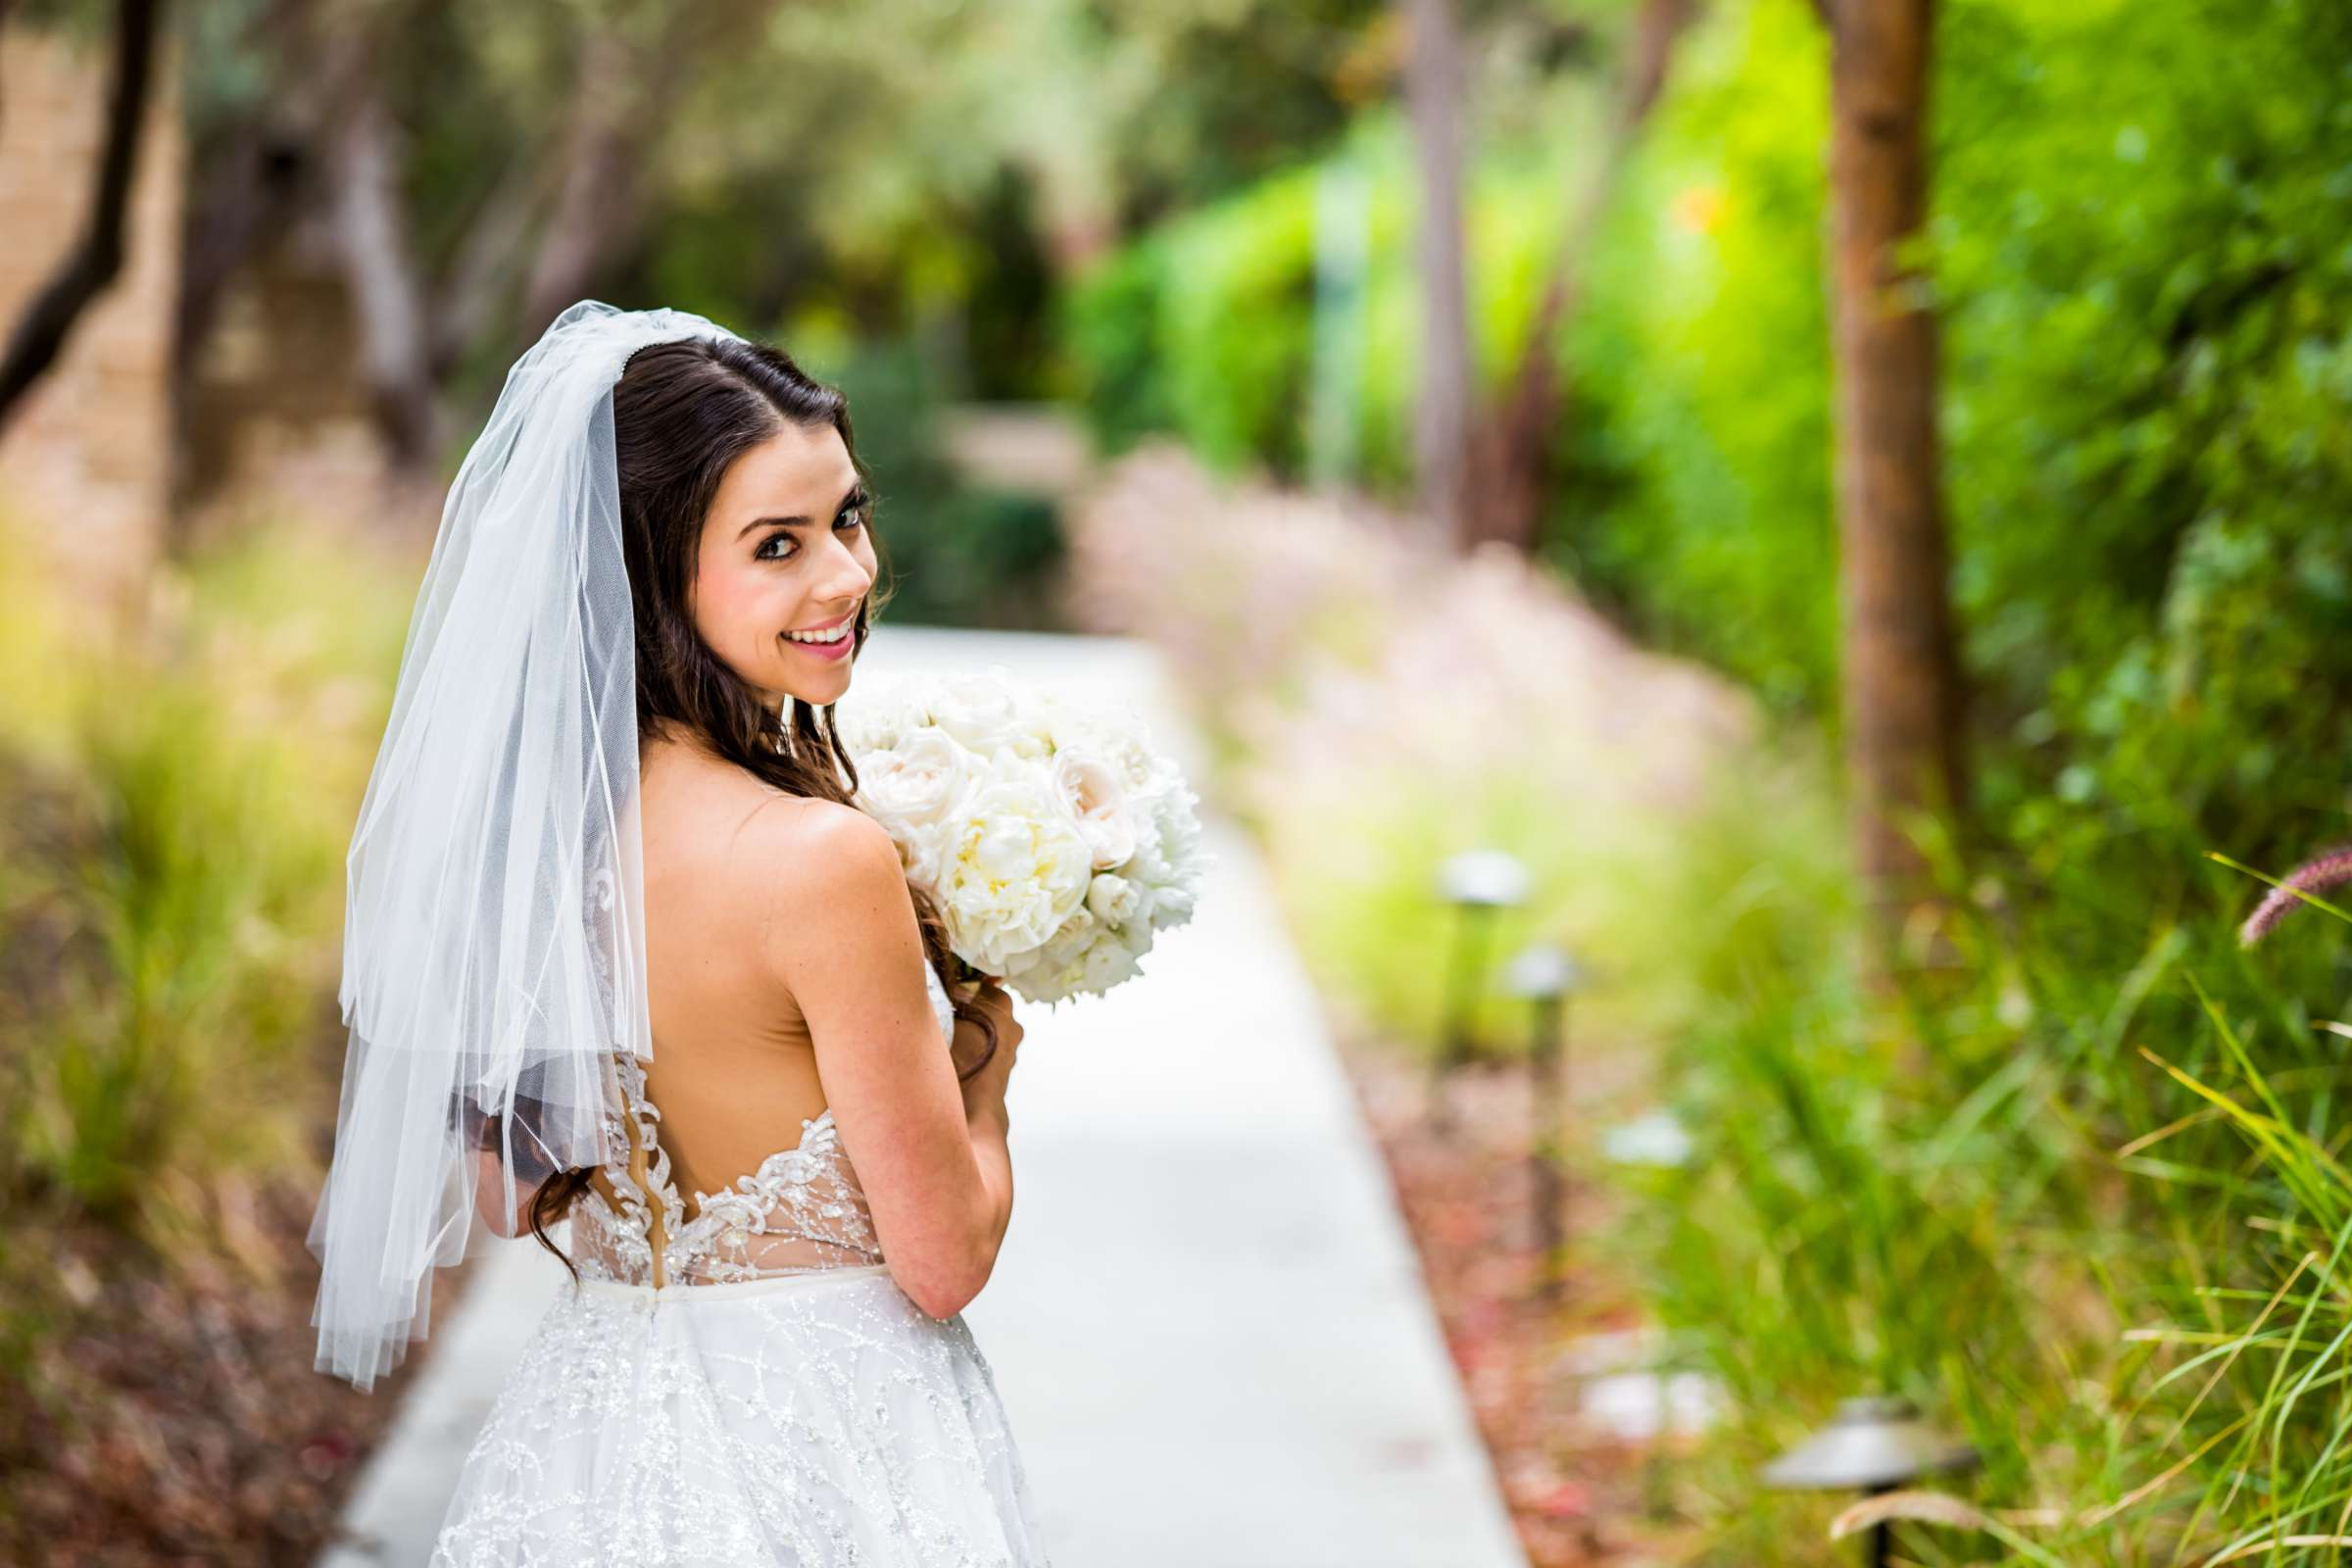 Estancia Wedding coordinated by Bliss Events, Ariana and Jimmy Wedding Photo #29 by True Photography